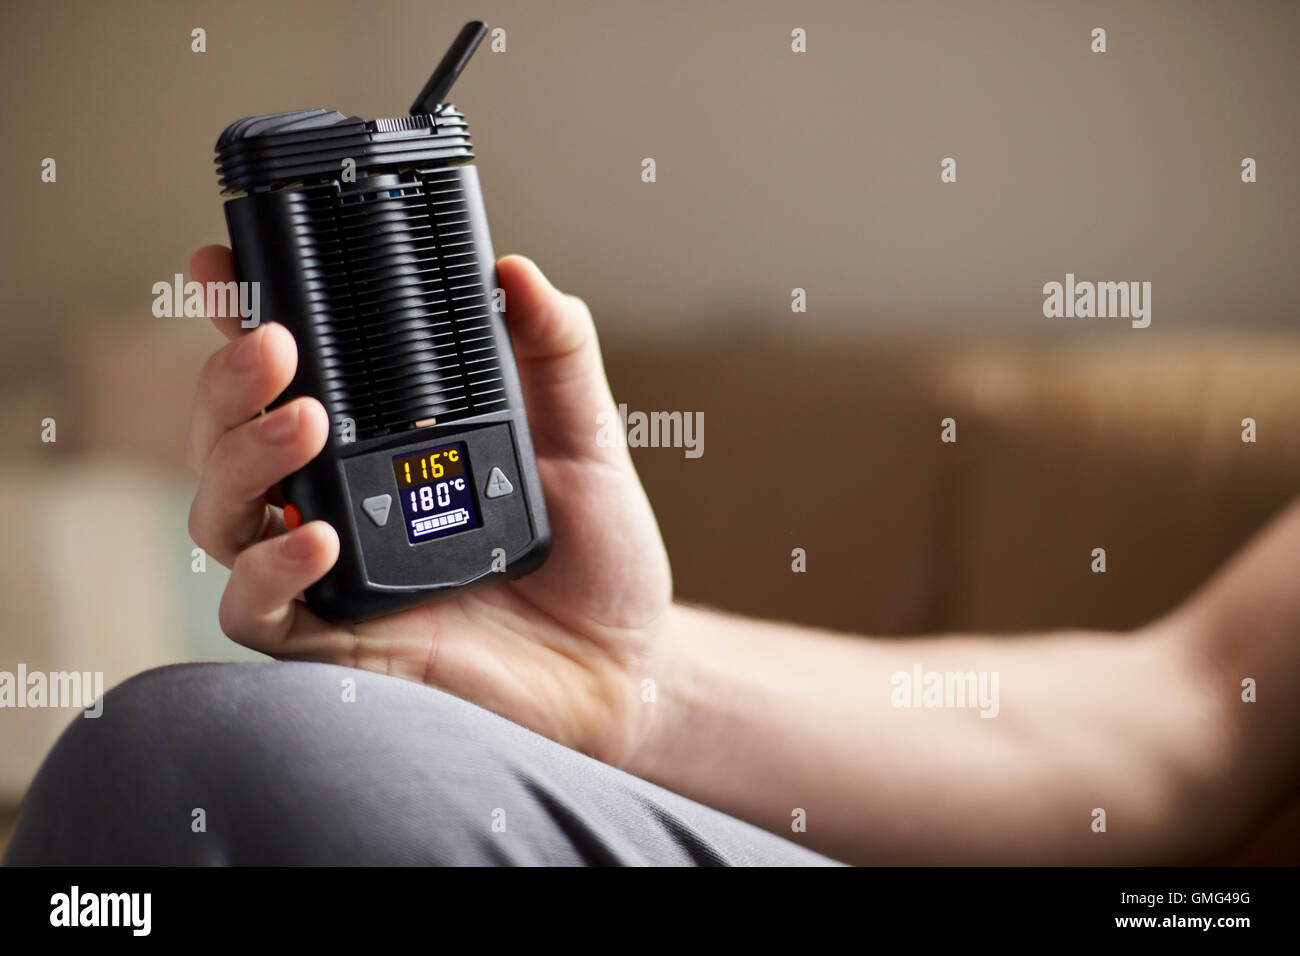 Close Up Of Man Holding Vapourizer - Stock Image